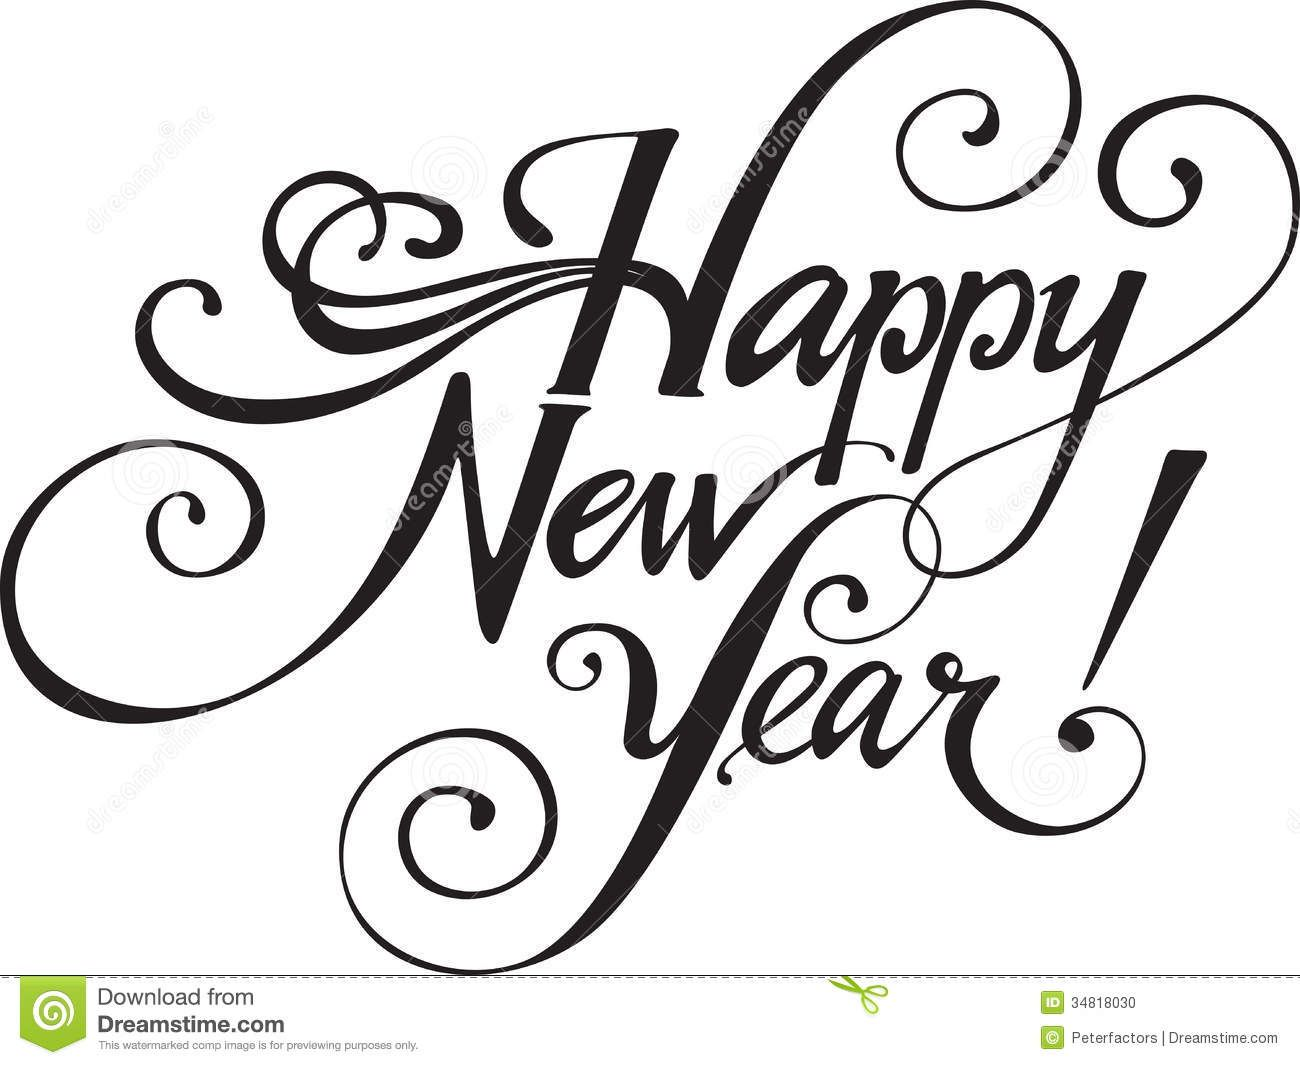 Happy new year 2016 clipart black and white svg freeuse New Years 2014 Clip Art Black And White New Year 2014 Clip Art | Gig ... svg freeuse